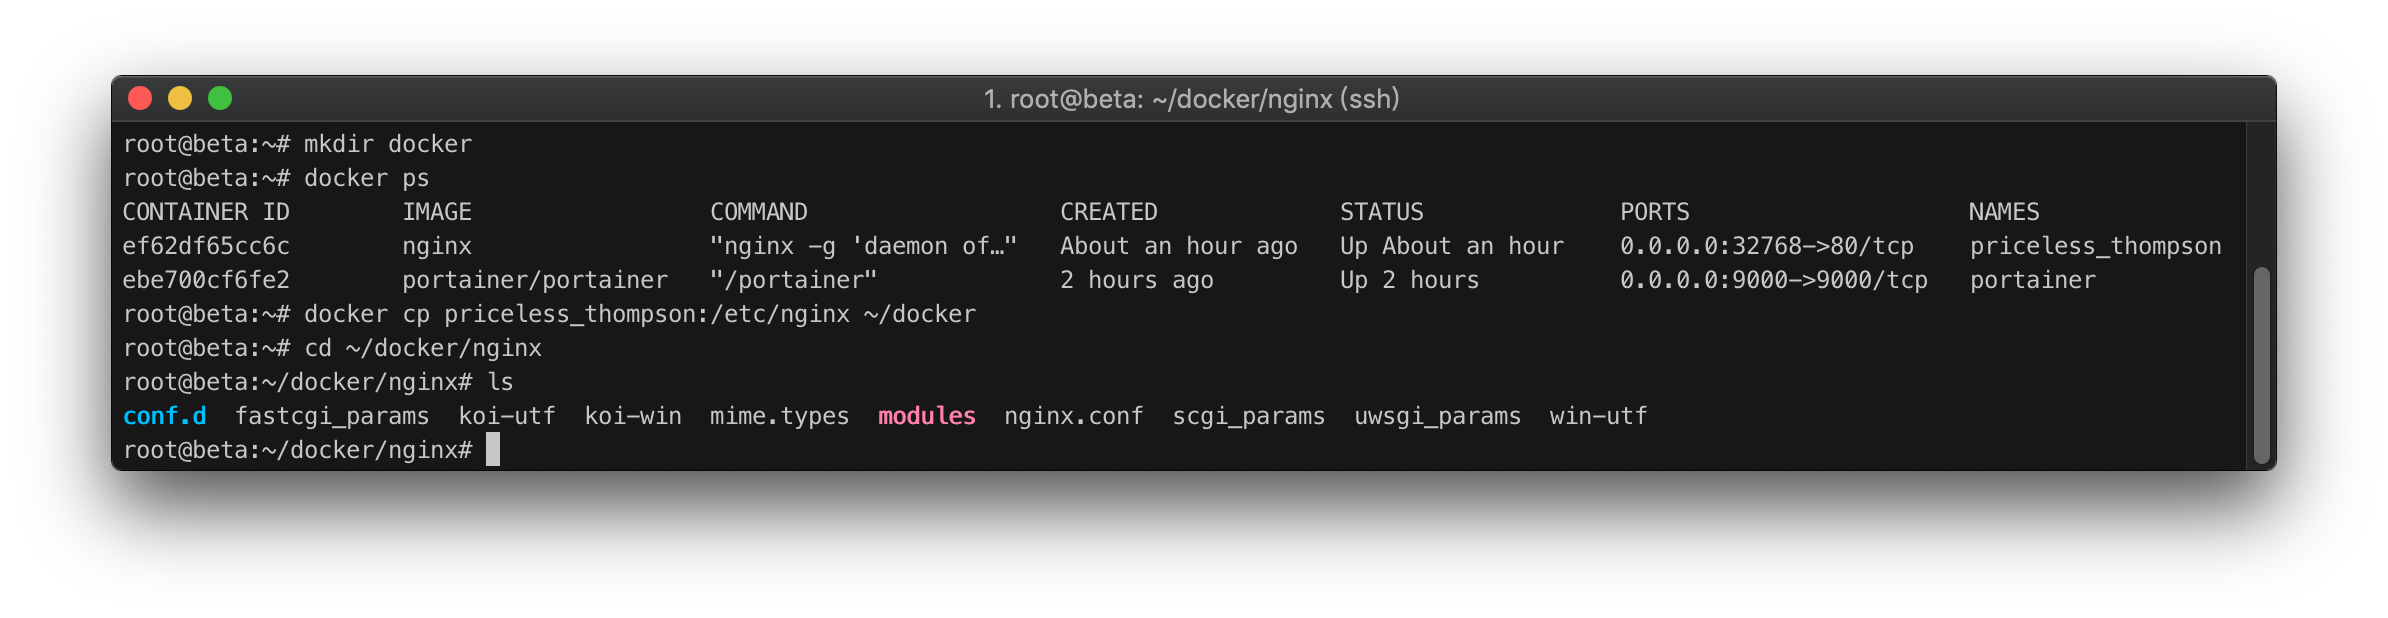 docker-nextcloud-example4.png